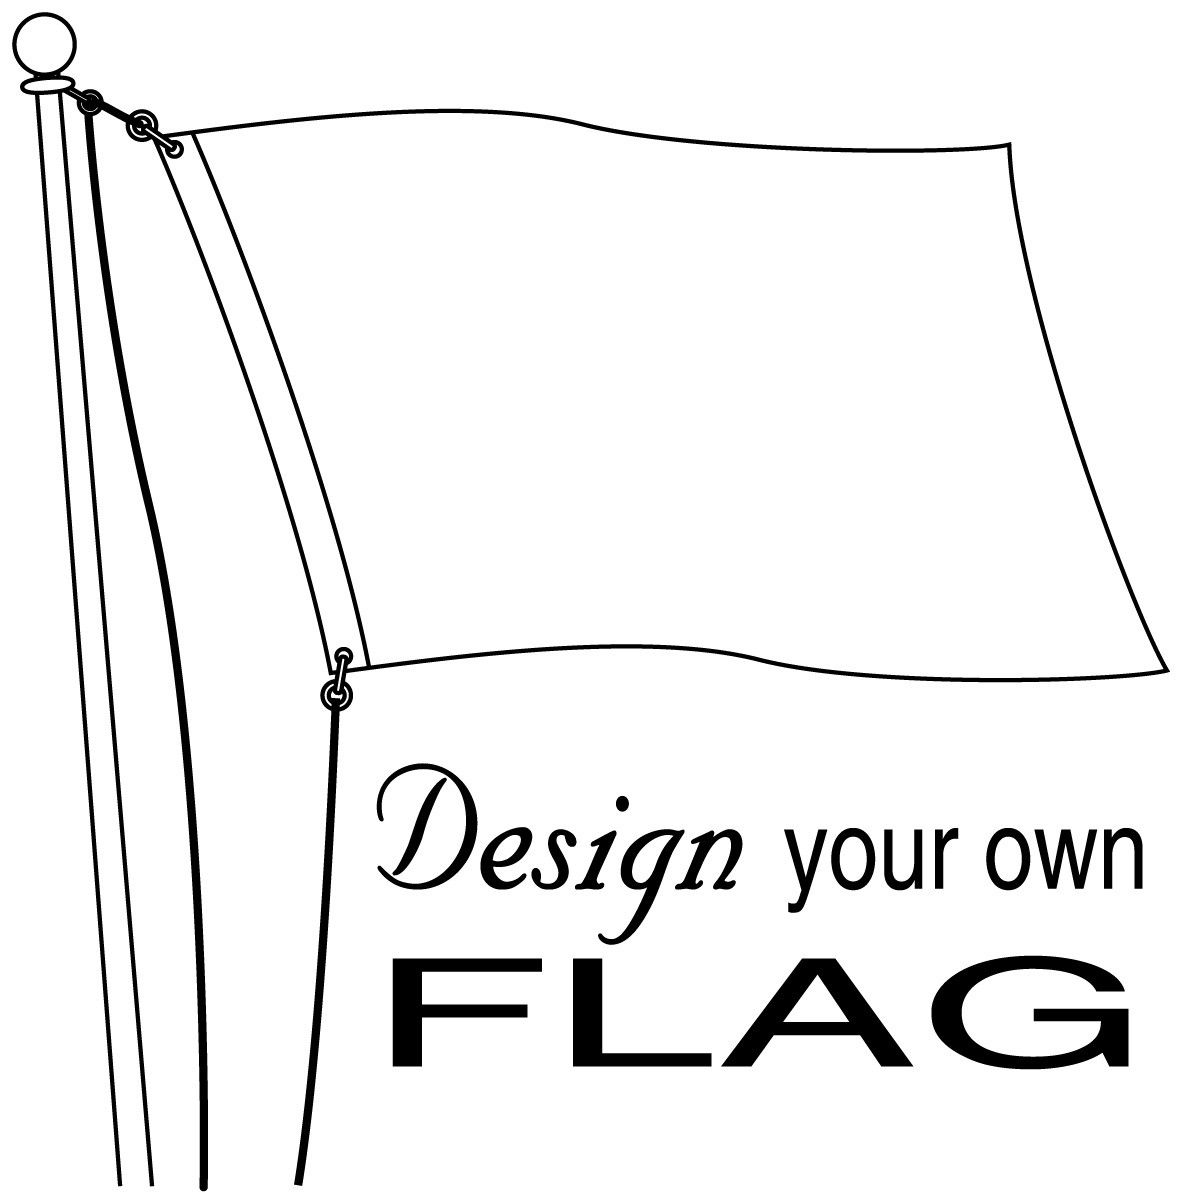 Crayon Box Template Make Your Own Flag, Design Your Own Flag